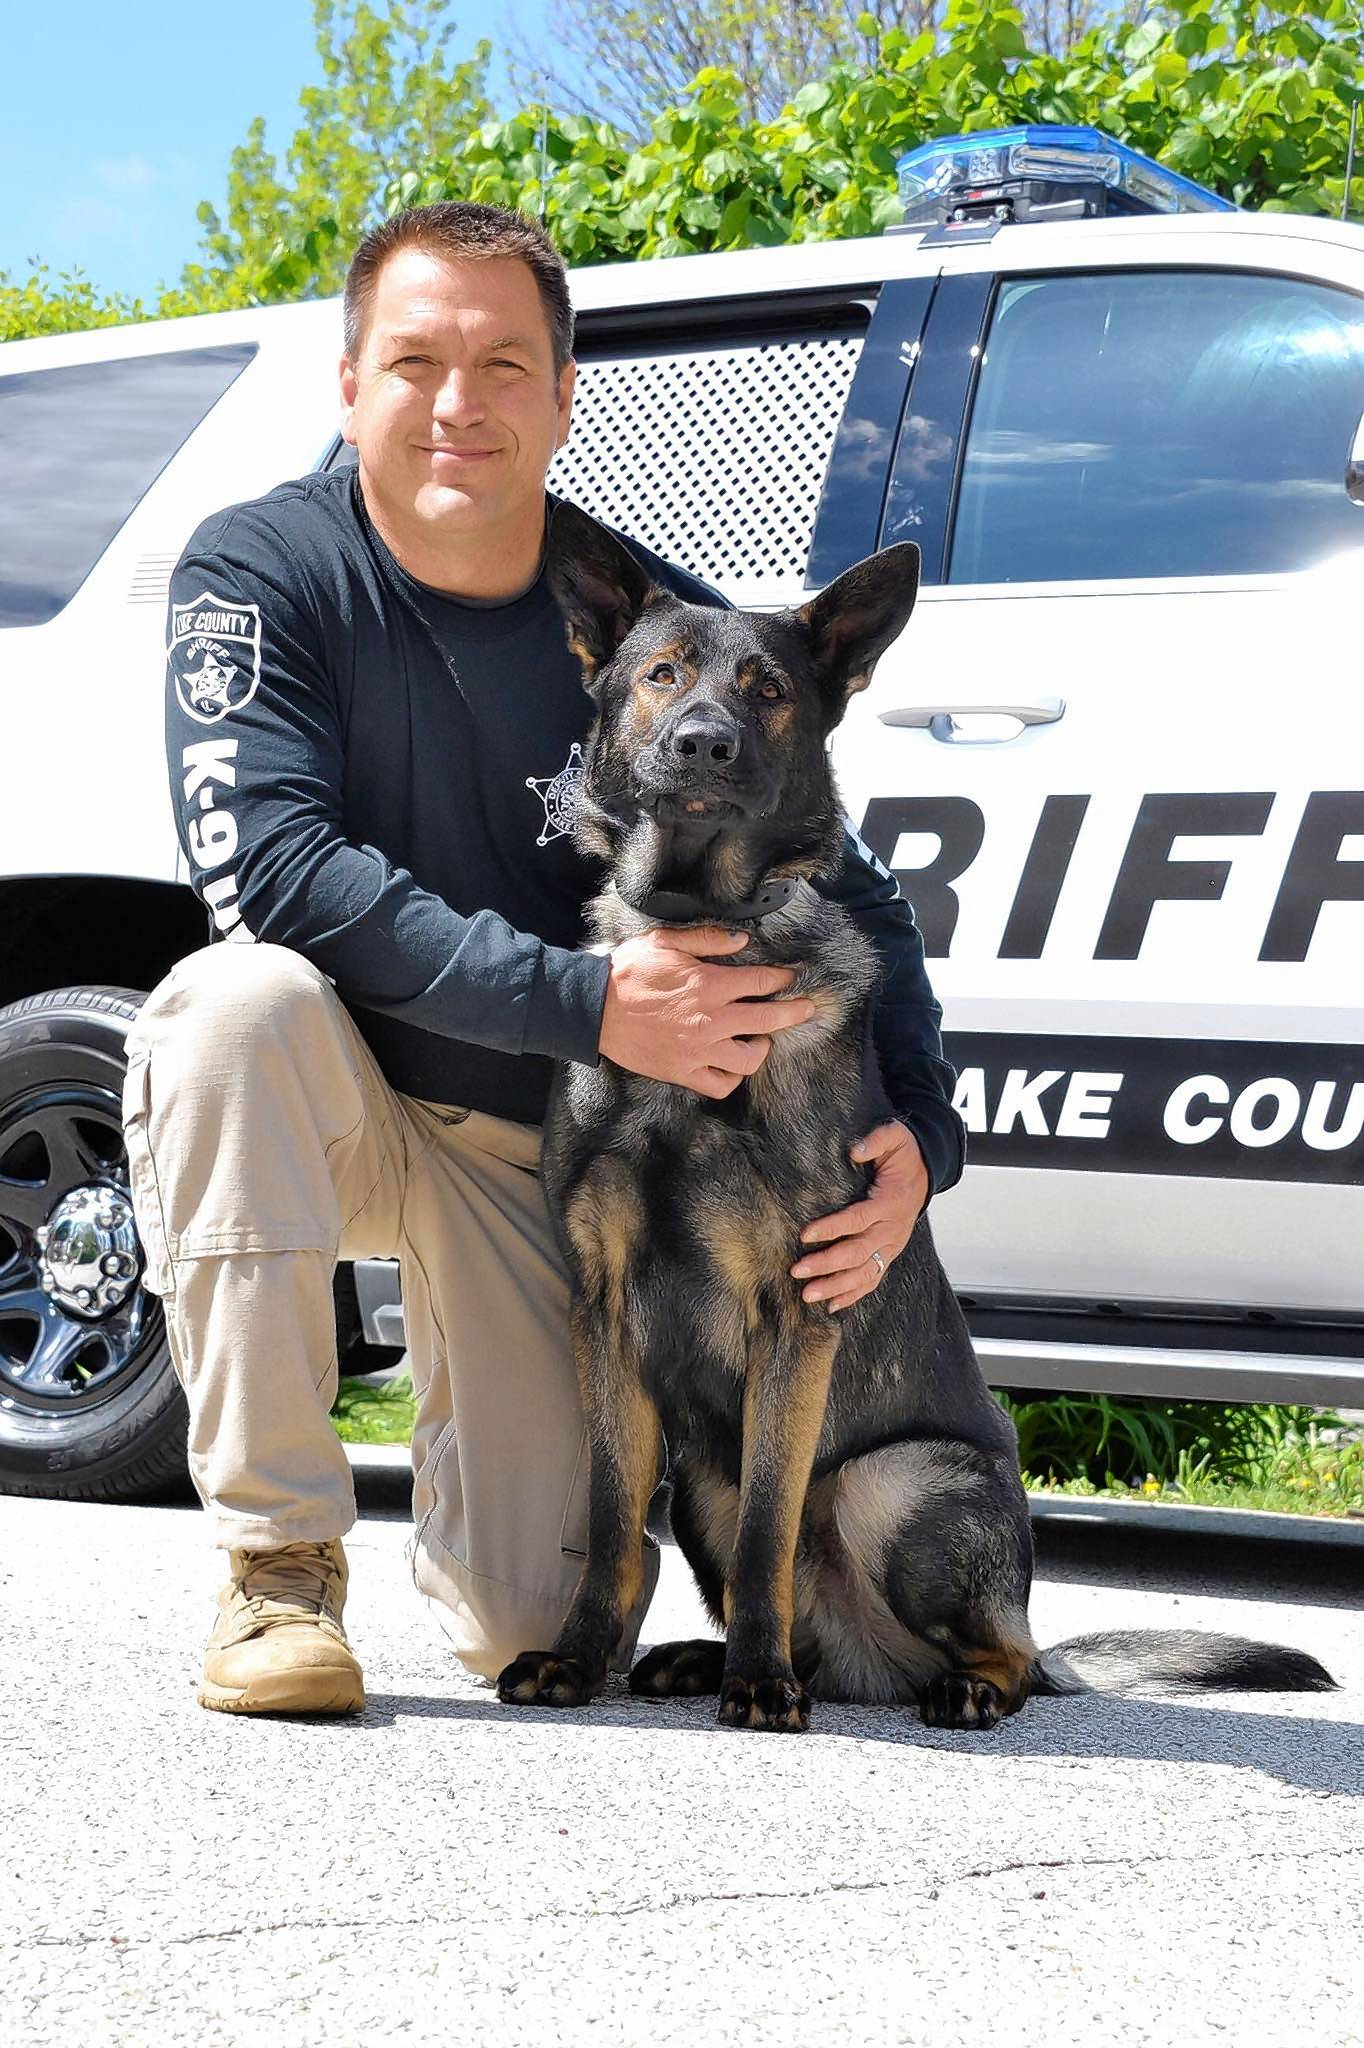 Lake County sheriff's deputy John Forlenza and canine officer Dax helped Lincolnshire police track down a hit-and-run driver early Saturday morning.